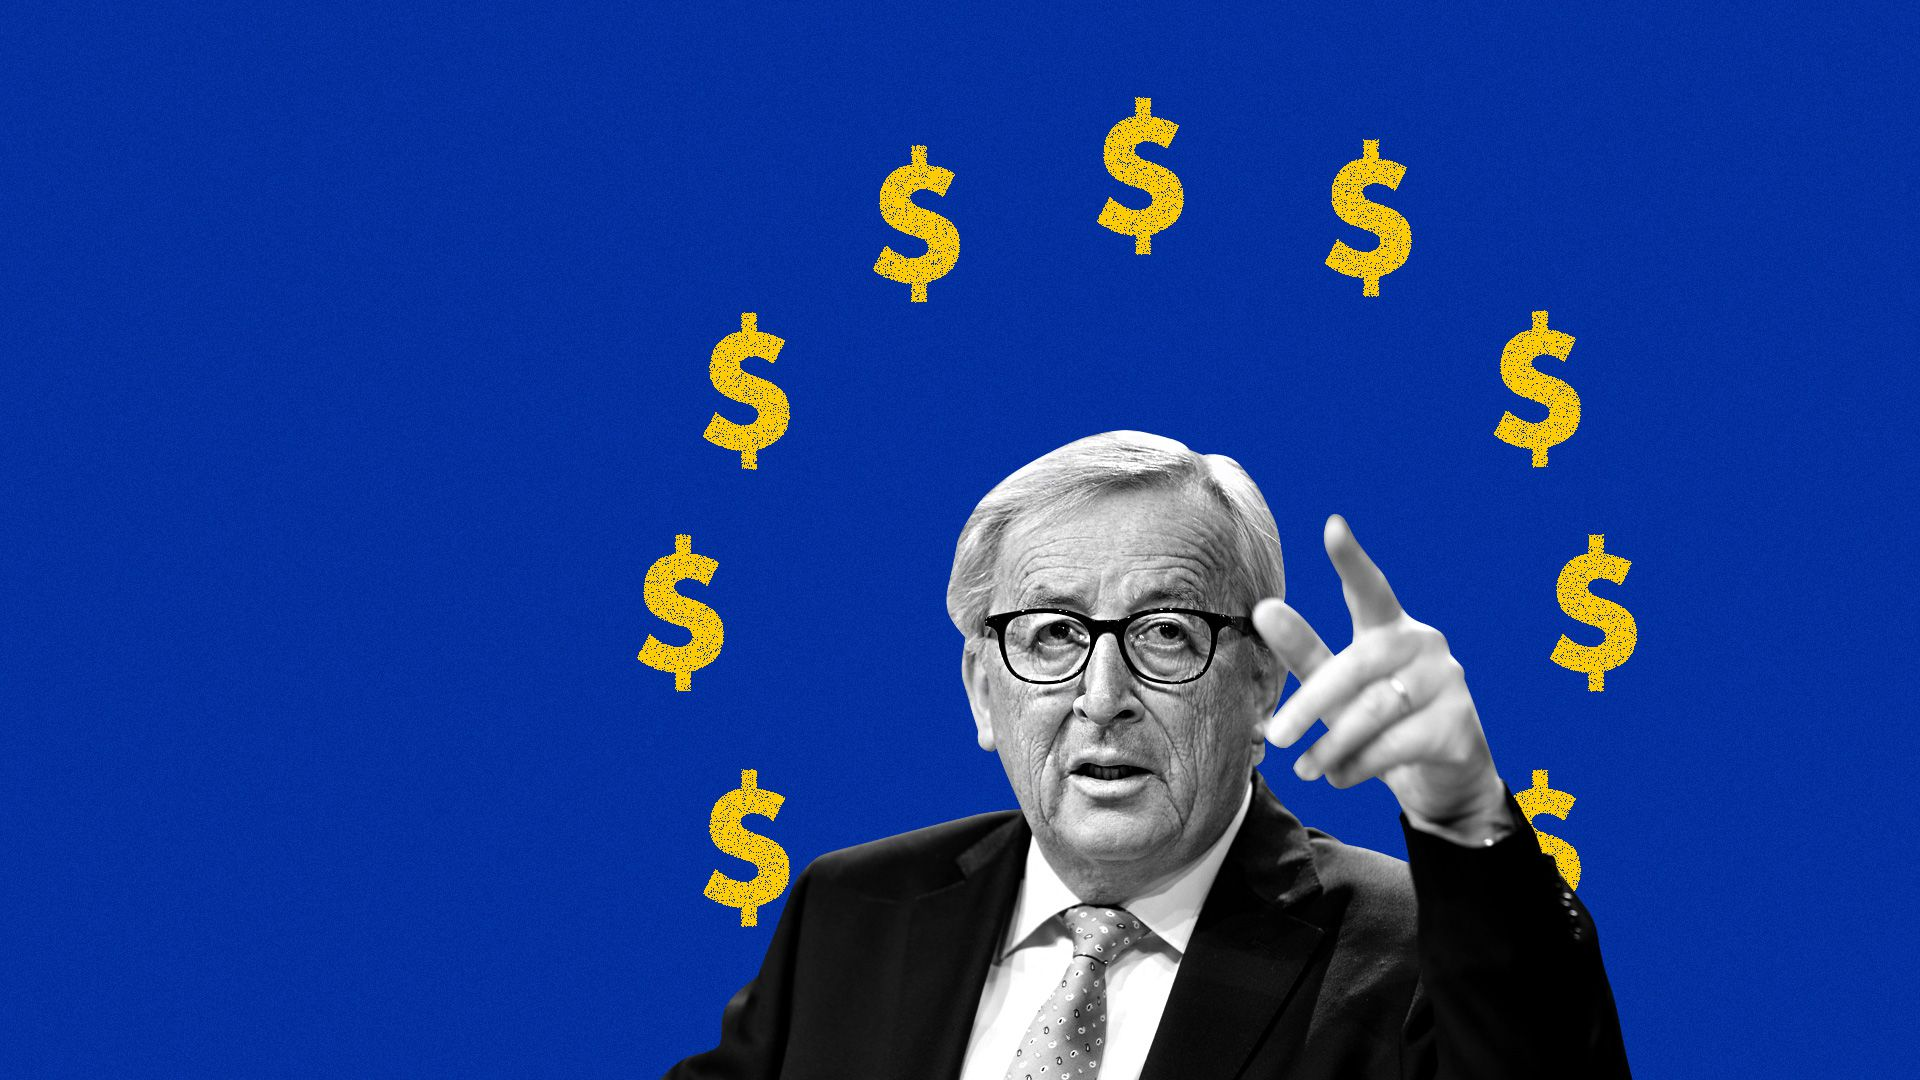 European Commission President Jean-Claude Juncker pictured in front of the E.U. flag with dollars instead of stars.